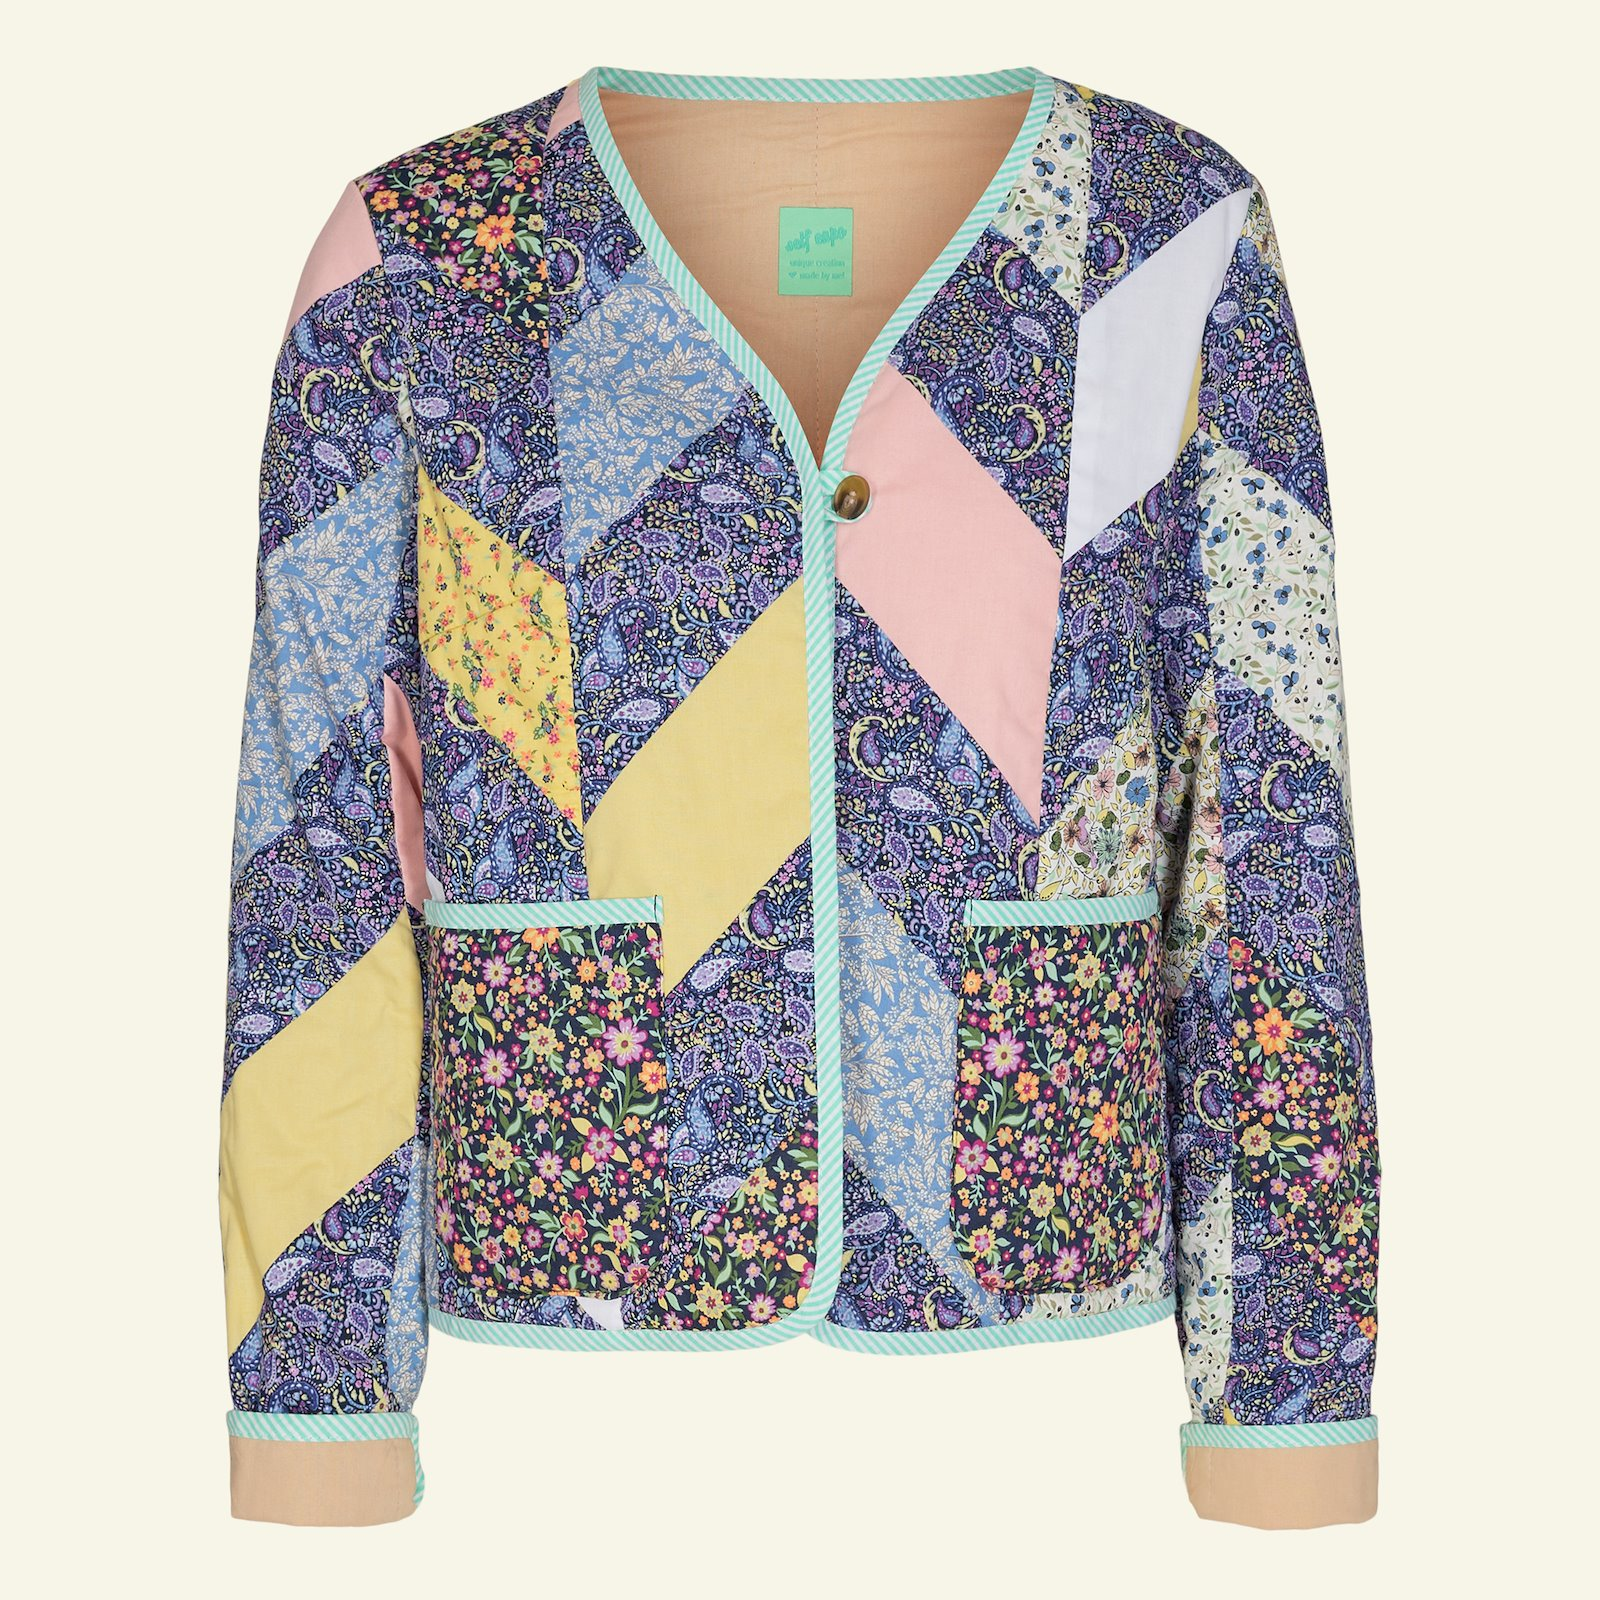 Quilted jacket and waistcoat, 42/14 p24047_852365_852363_852364_852362_852359_852366_4358_4201_4357_64108_sskit